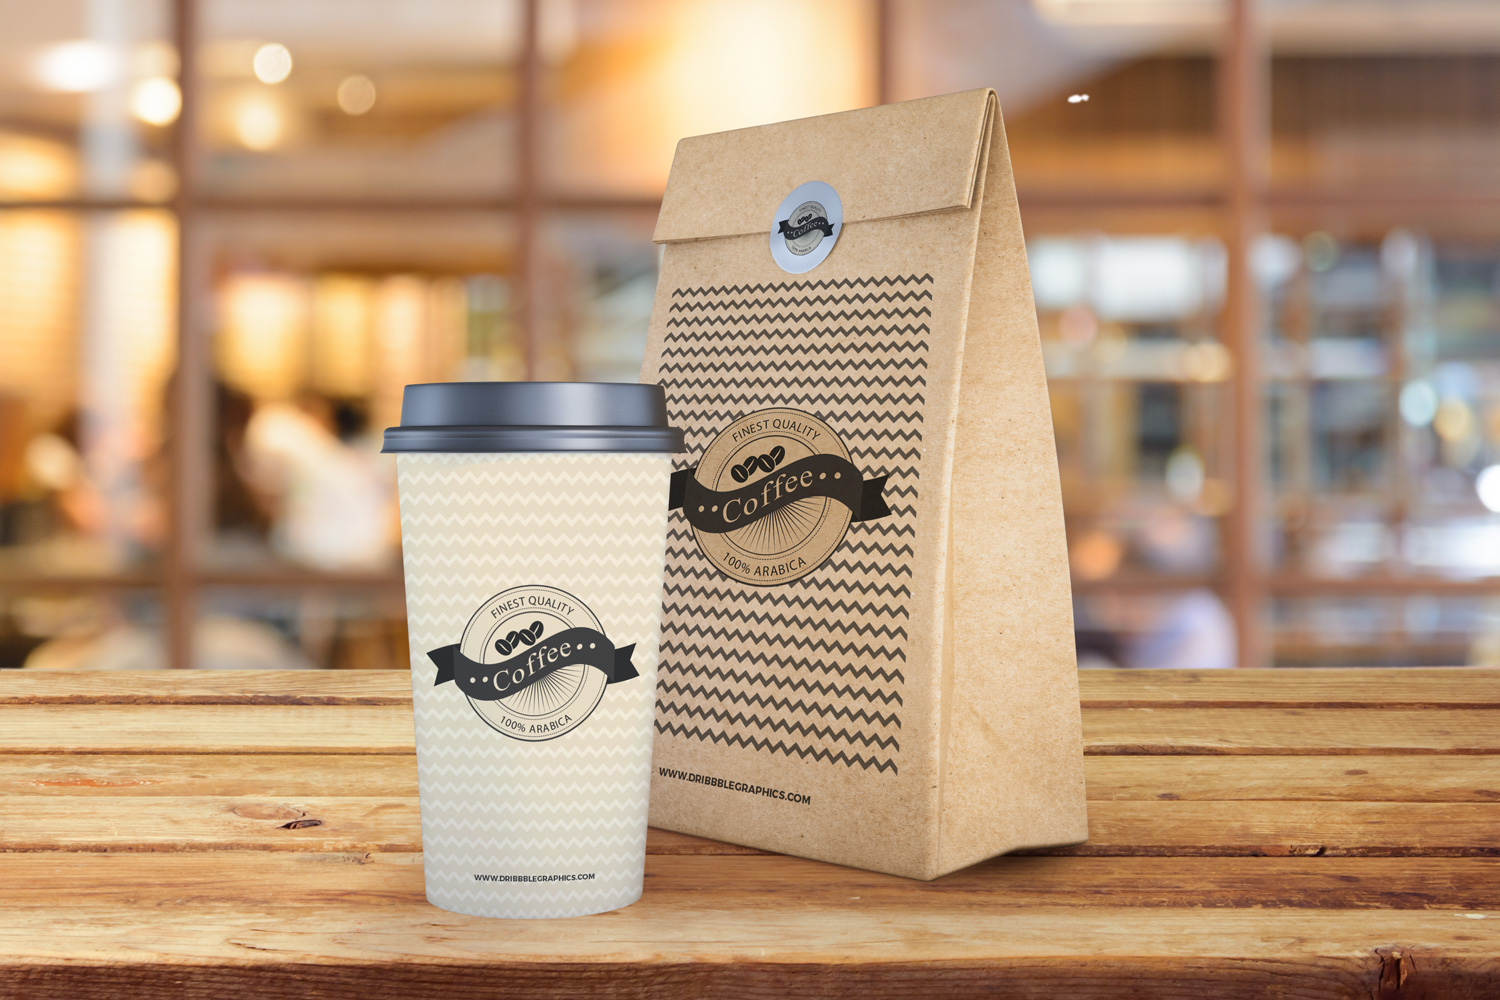 Free Coffee Cup and Paper Bag Mockup PSD | Dribbble Graphics